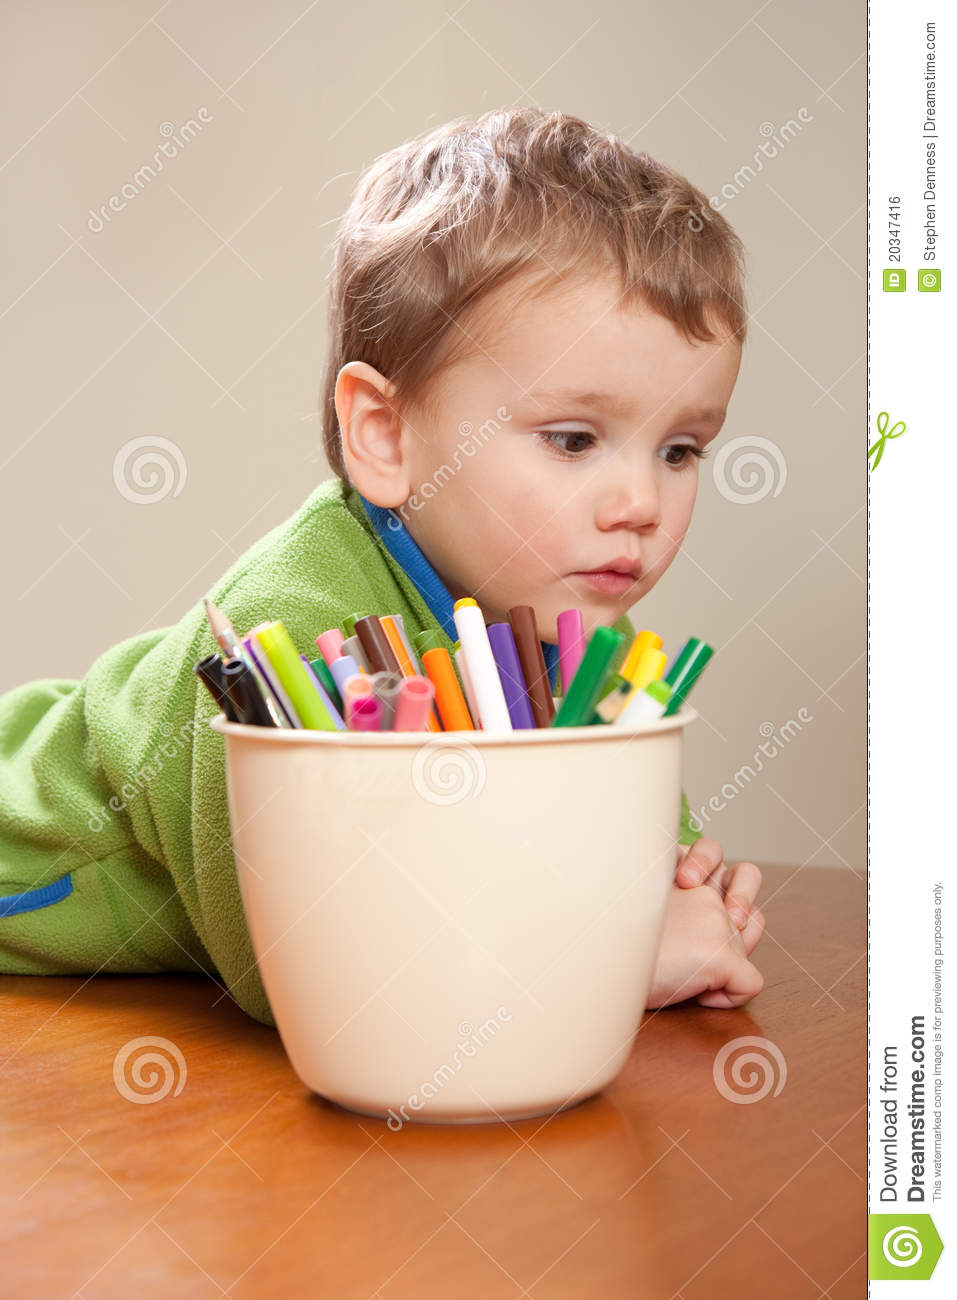 Boy Child With Kids Colored Drawing Pens Stock Photo ...